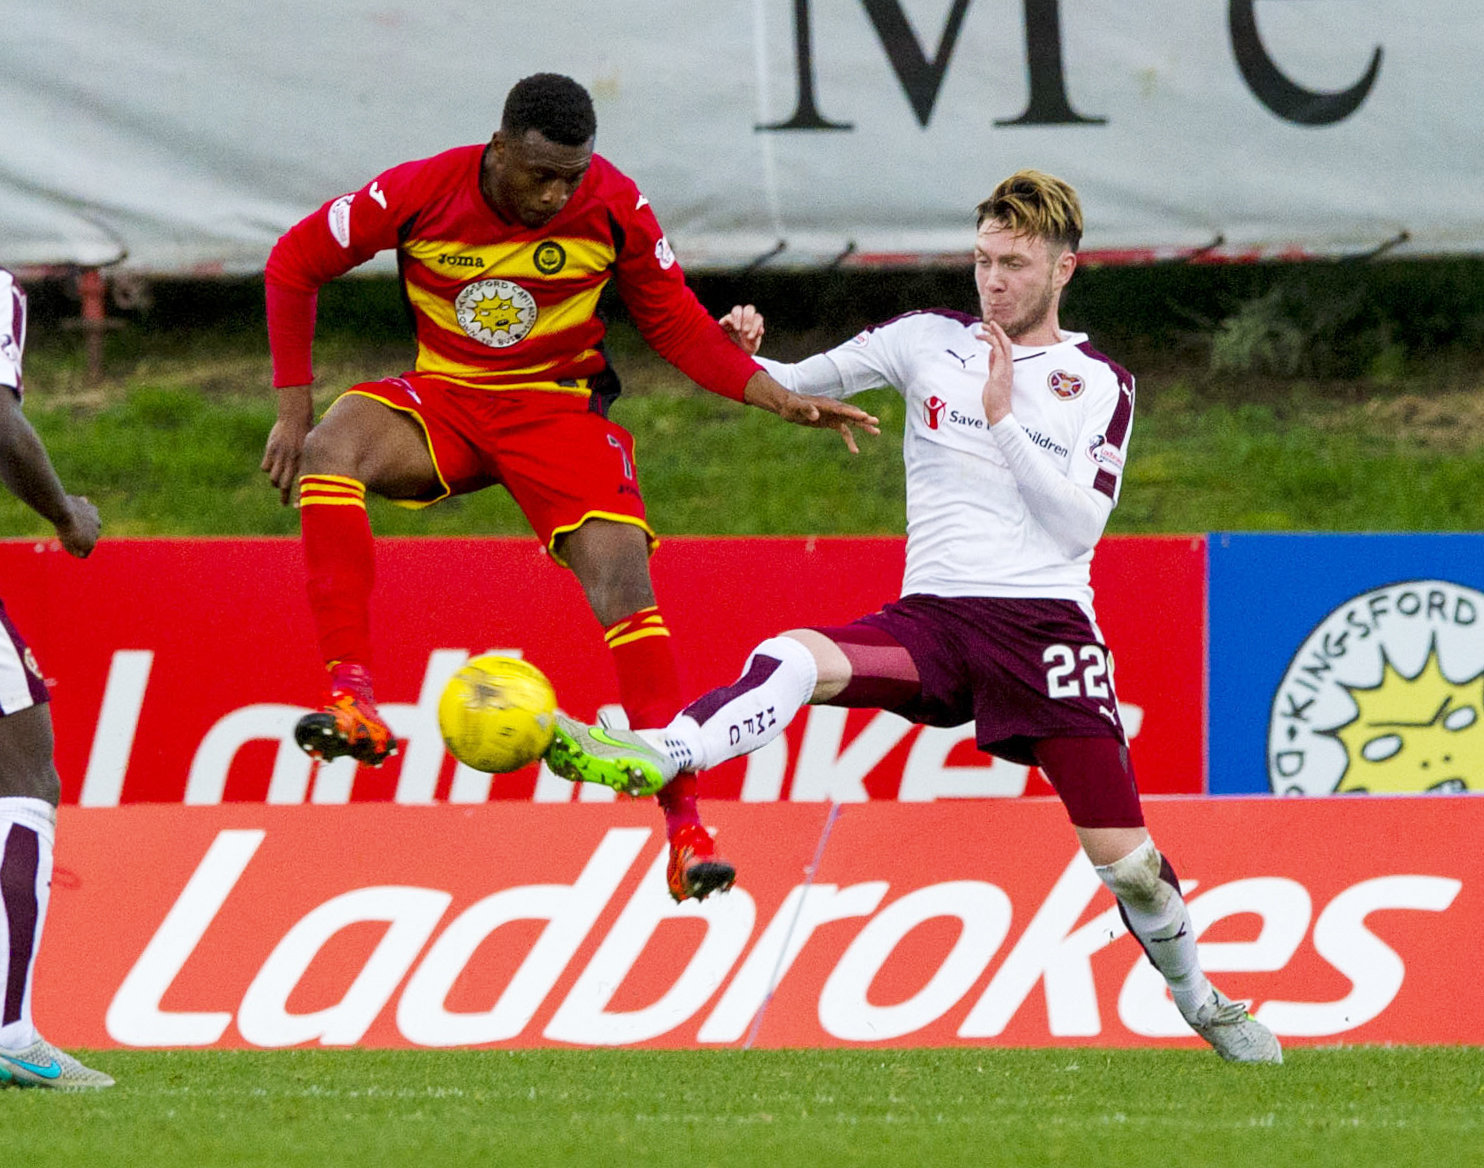 PARTICK THISTLE v HEARTS (4-0) .  FIRHILL STADIUM - GLASGOW  .  Partick's David Amoo (centre) retains possession from Hearts' Jordan McGhee (22).